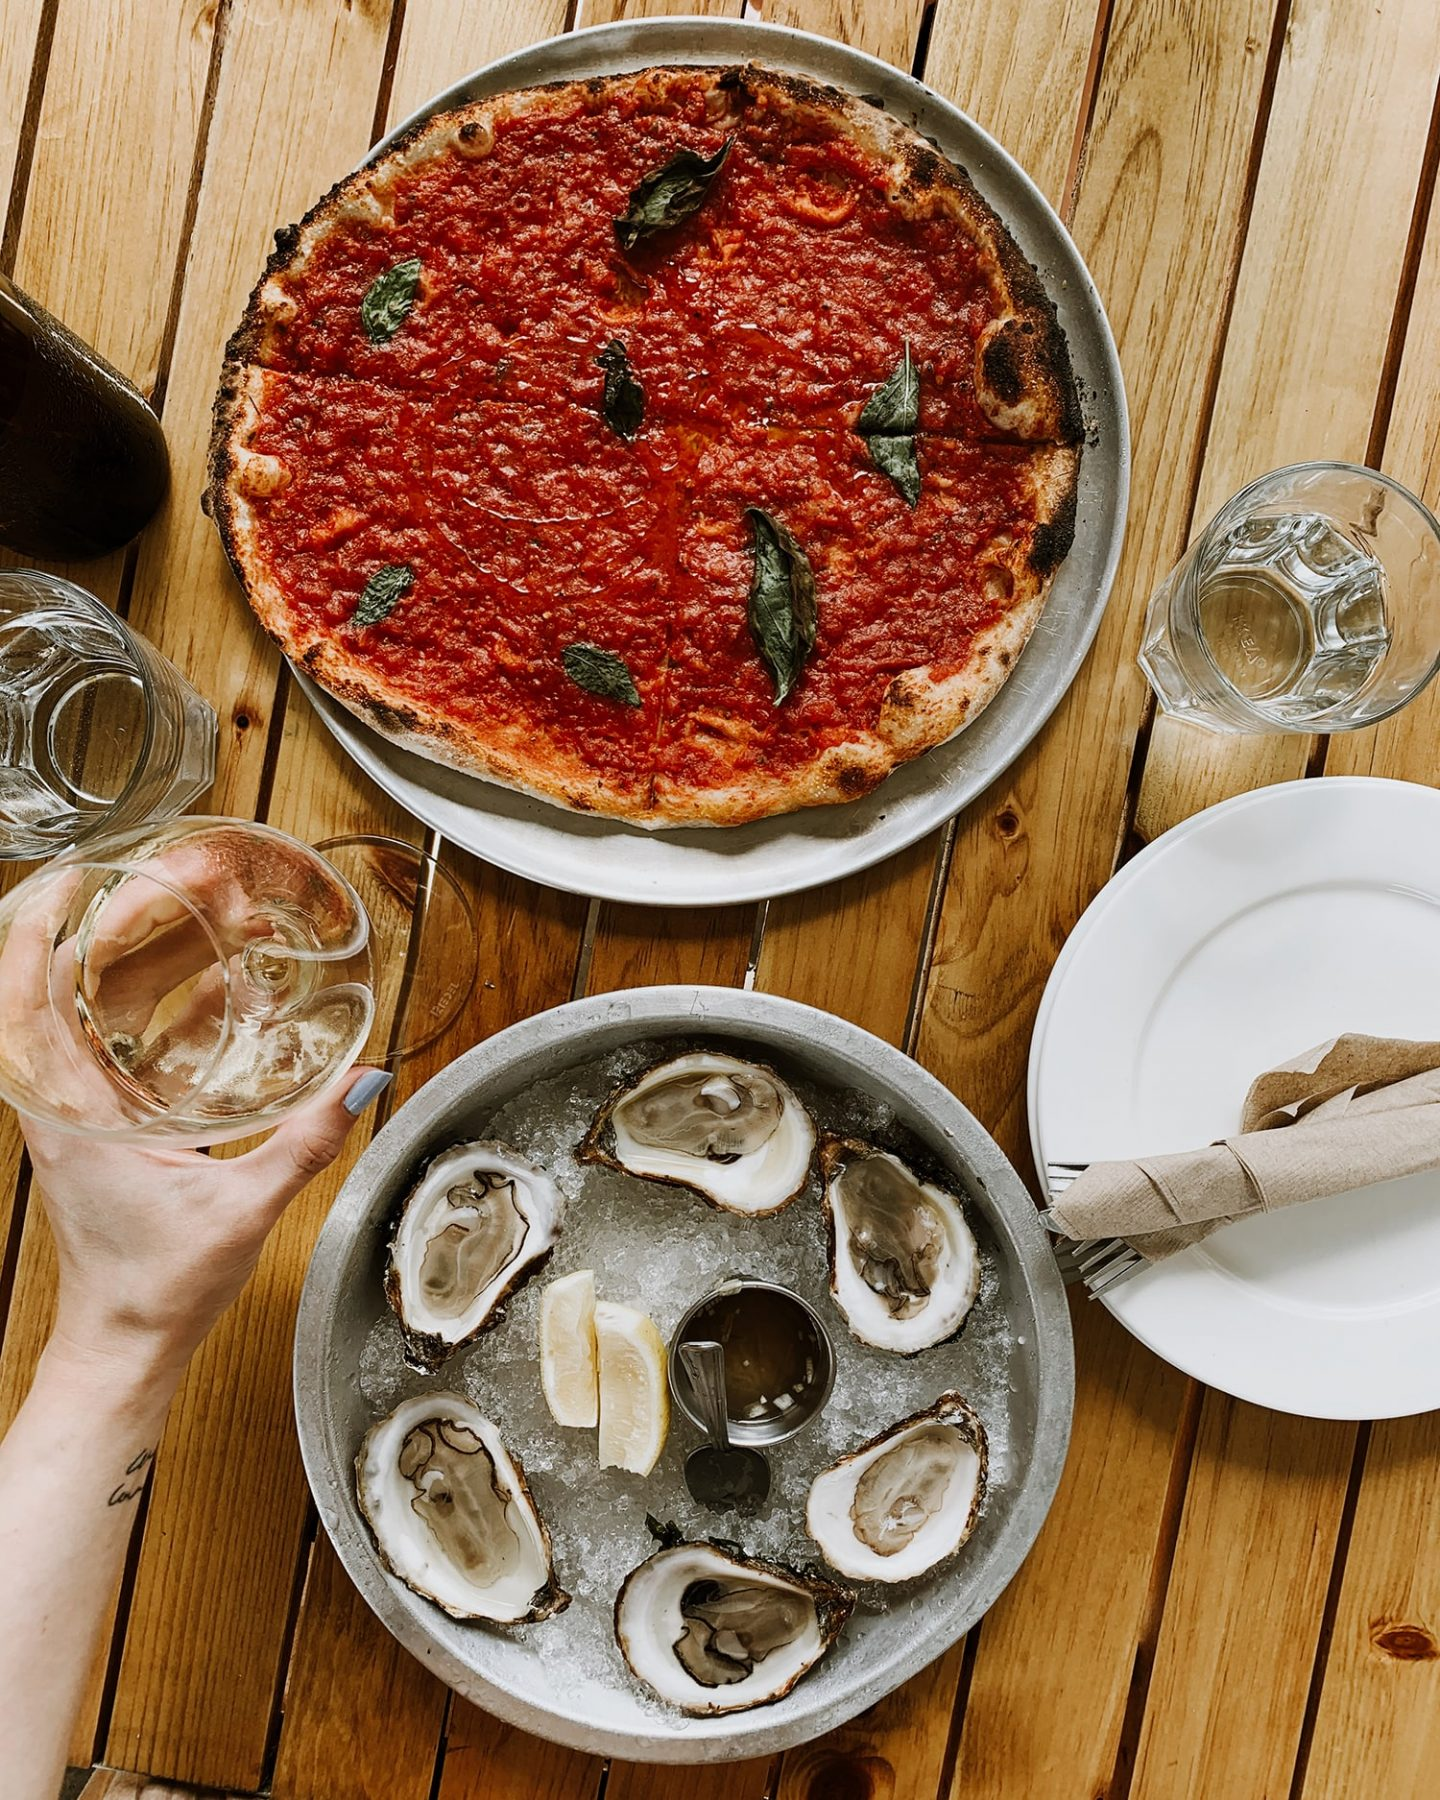 Norman Hardie Winery and Vineyard pizza and oysters in Wellington, Prince Edward County